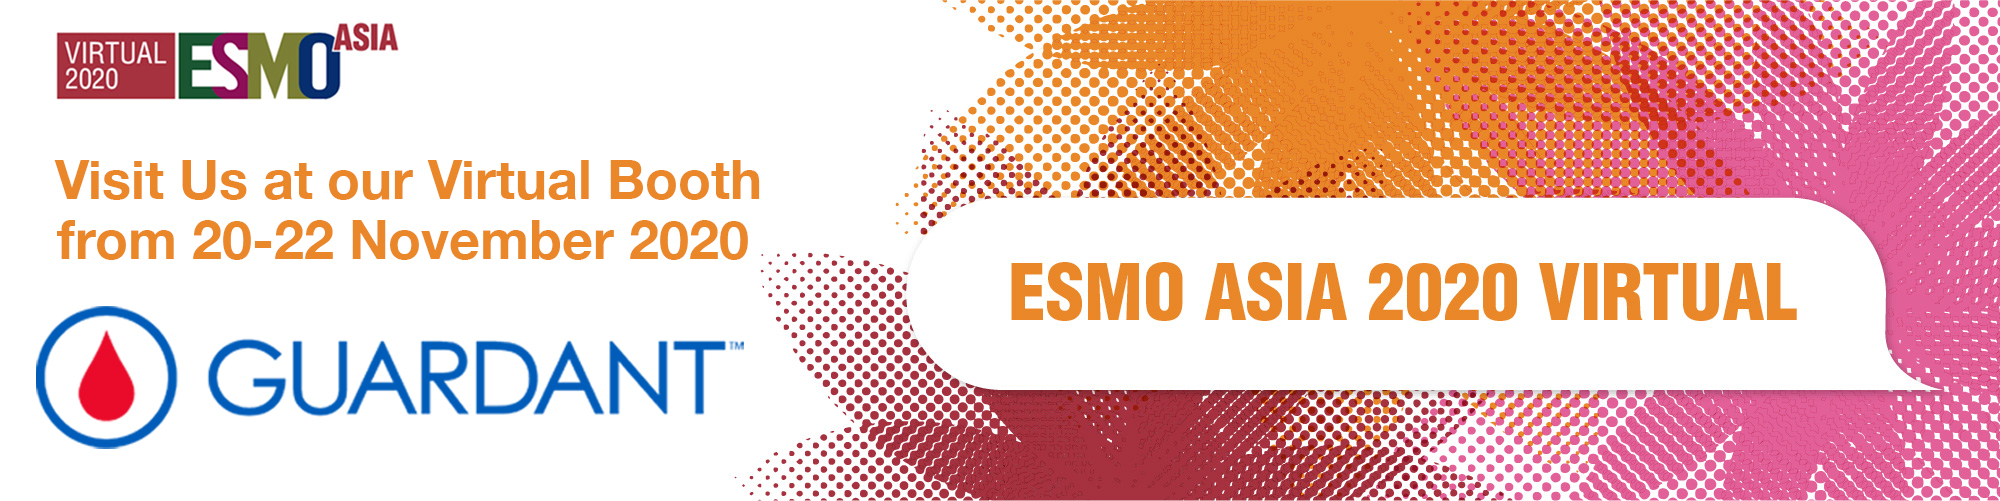 8 Days to go to ESMO Asia Virtual Congress 2020 taking place from 20th to 22th Nov